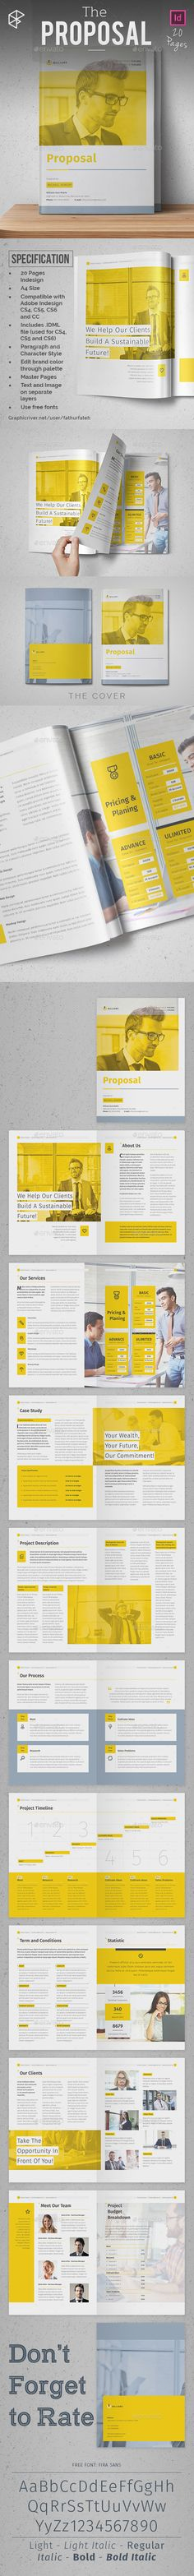 Creative Proposal Proposal templates and Proposals - proposal templates